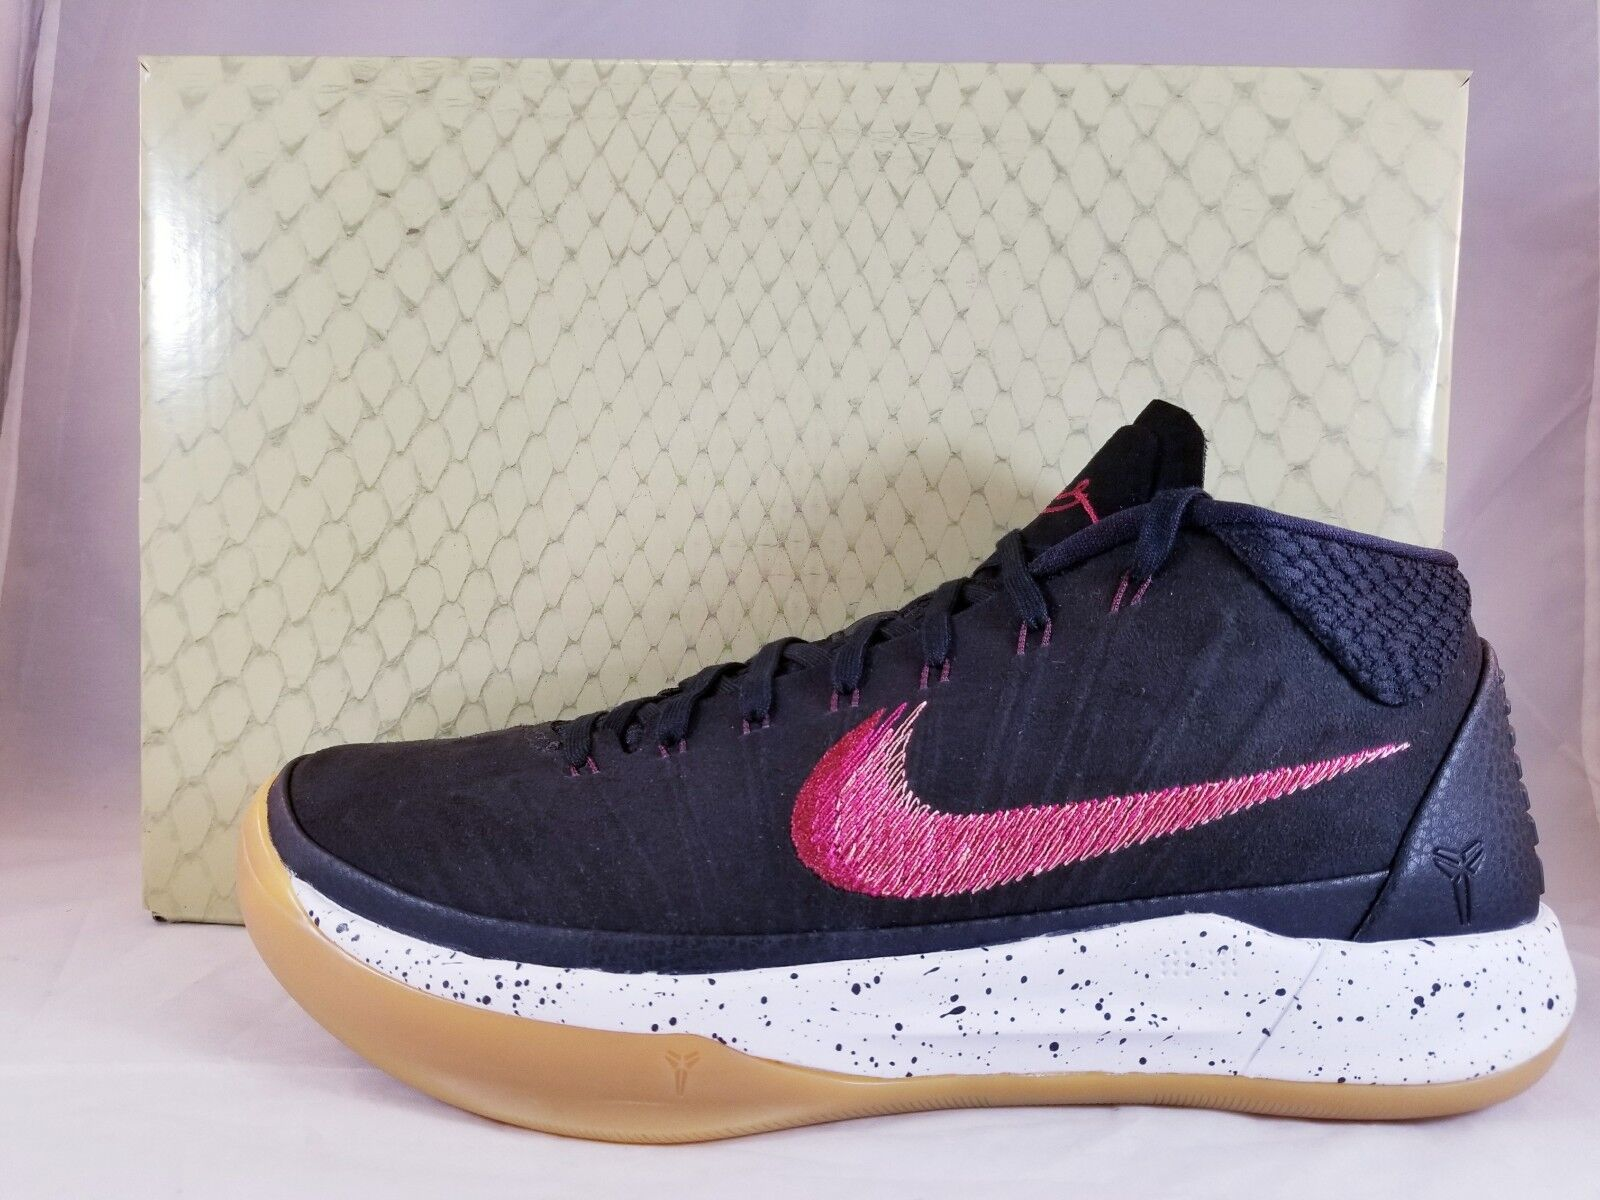 Nike Shoe Kobe AD Men's Basketball Shoe Nike 922482 006 Size 10 90d2fd